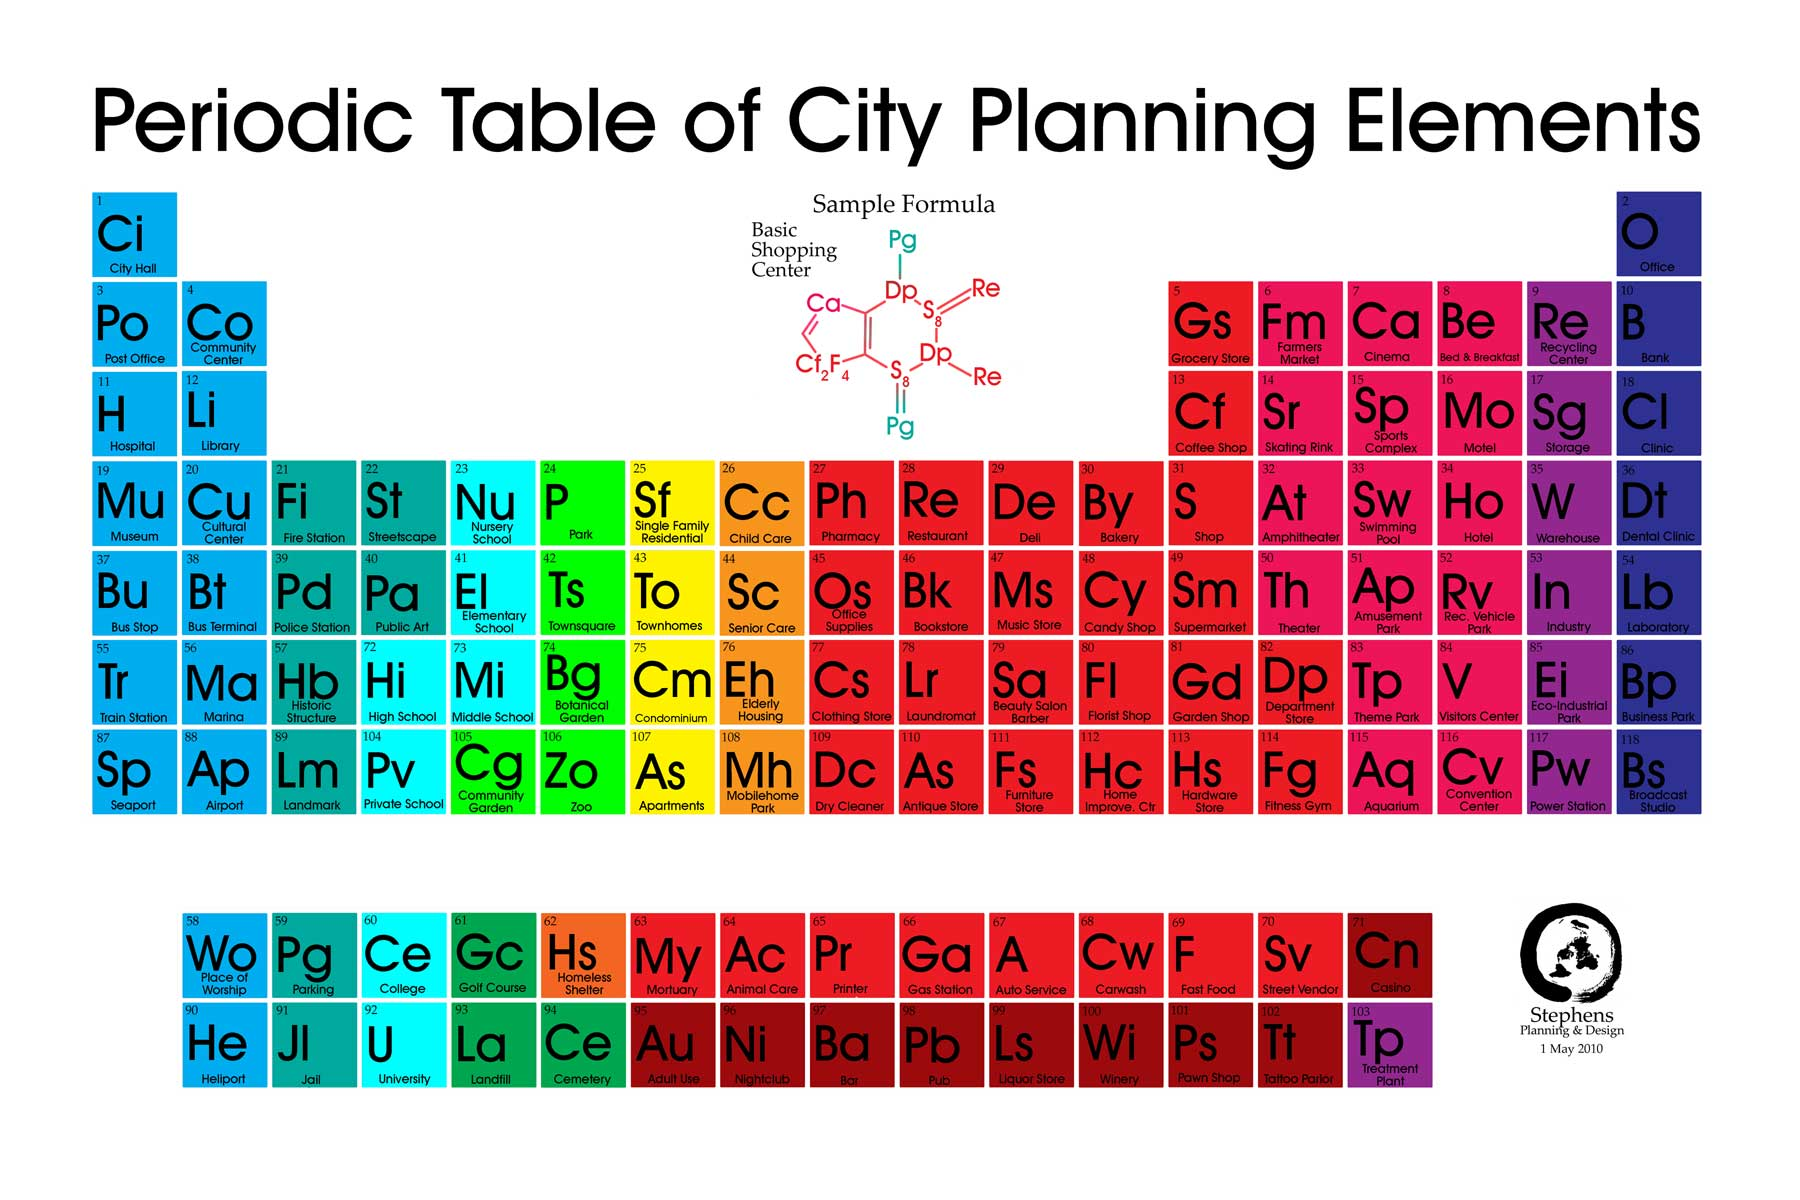 The periodic table of city planning elements features planetizen click the image to see a larger version in a new window urtaz